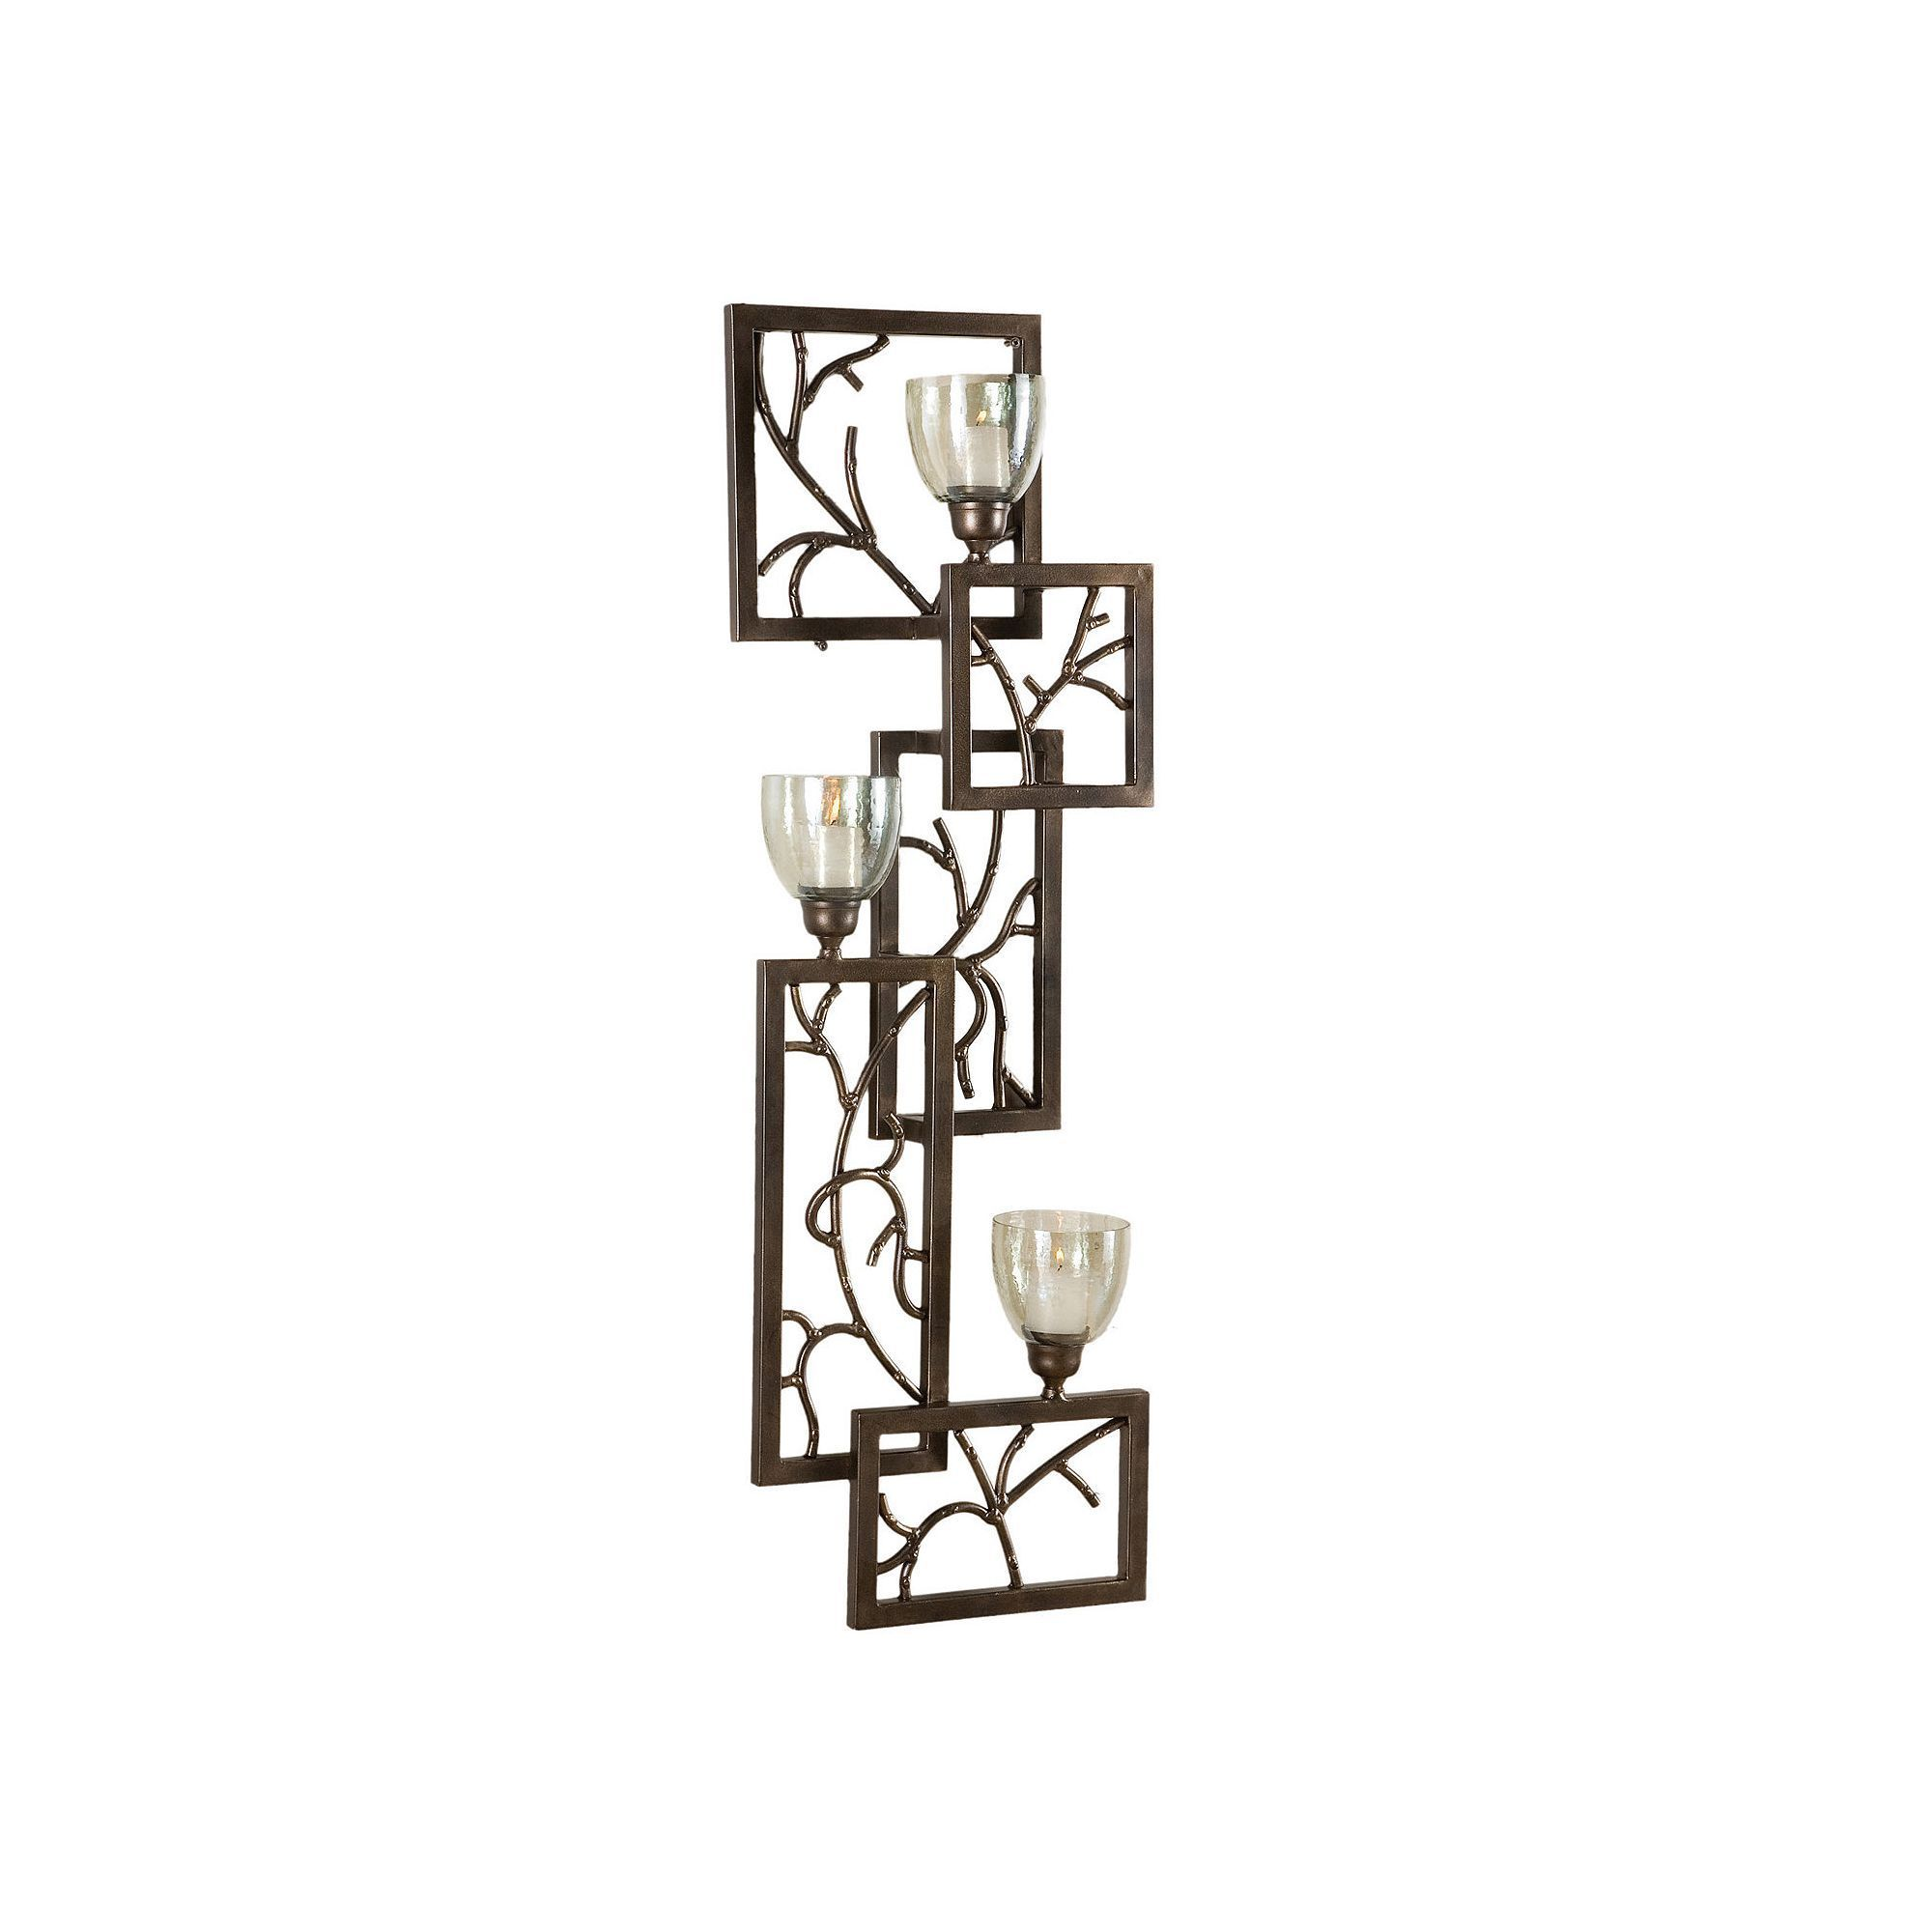 Uttermost branch 3 candle wall sconce wall sconces and products uttermost branch 3 candle wall sconce amipublicfo Gallery